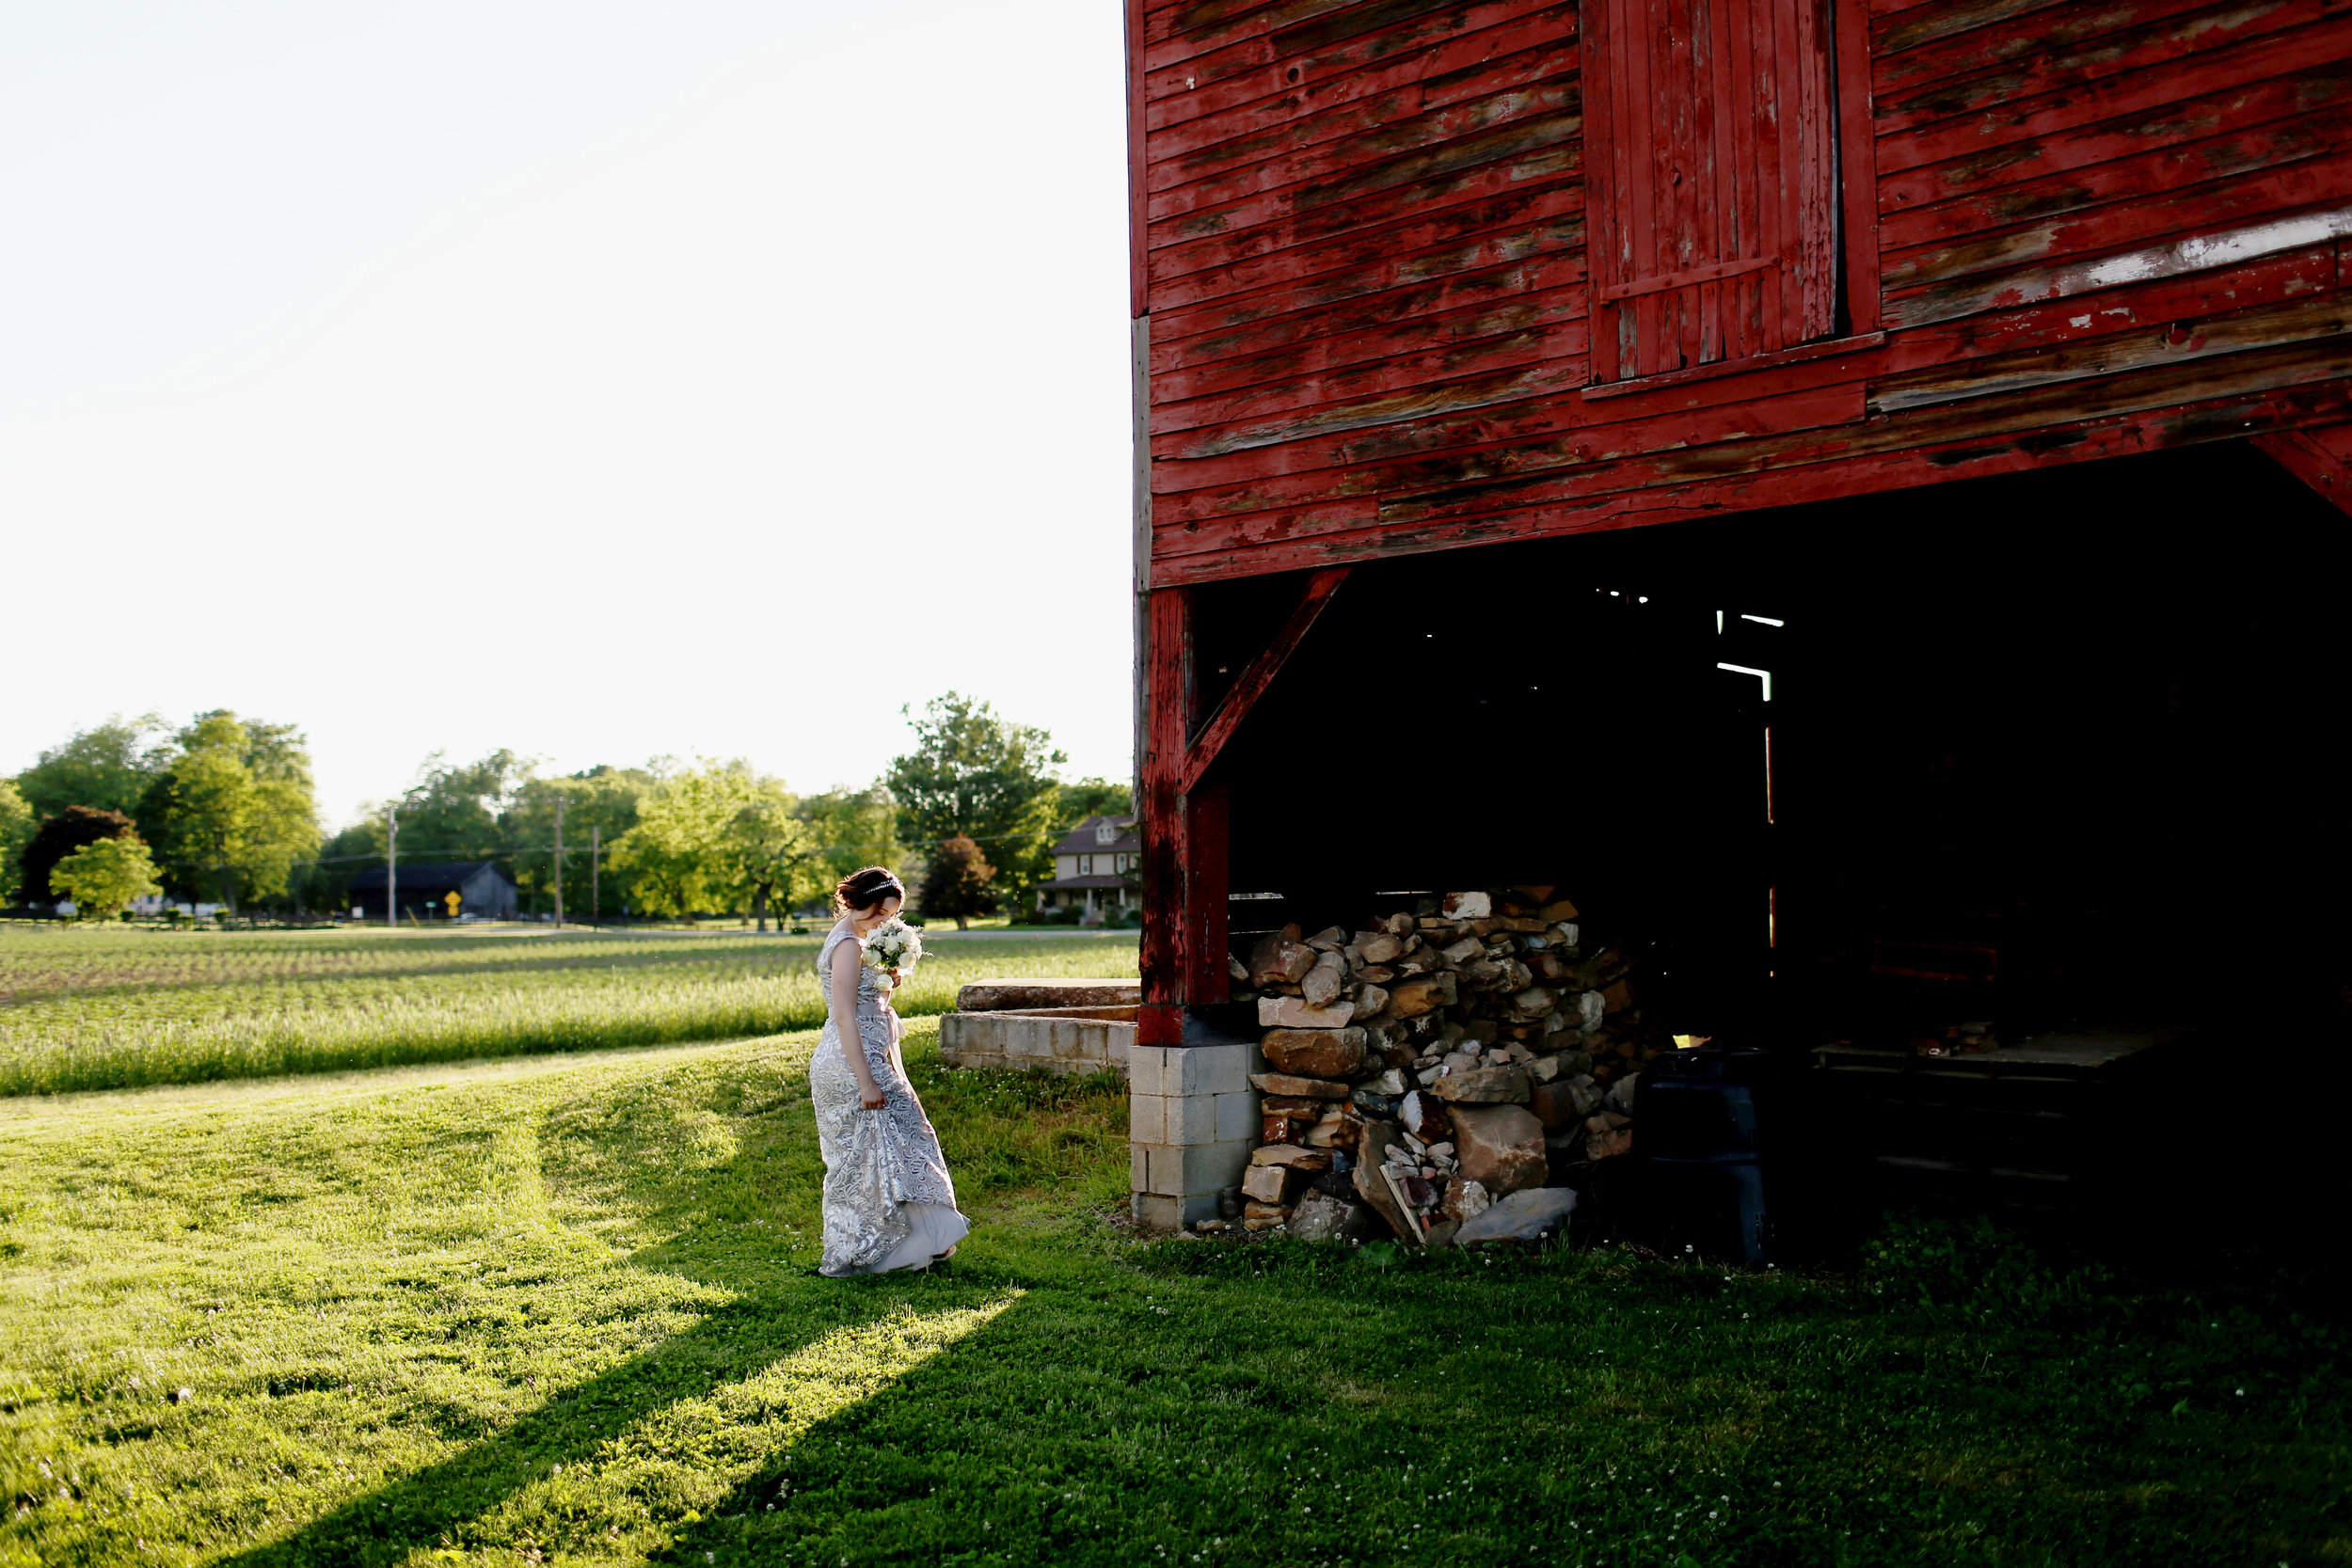 WEDDINGS AND ENGAGEMENT PHOTOGRAPHY